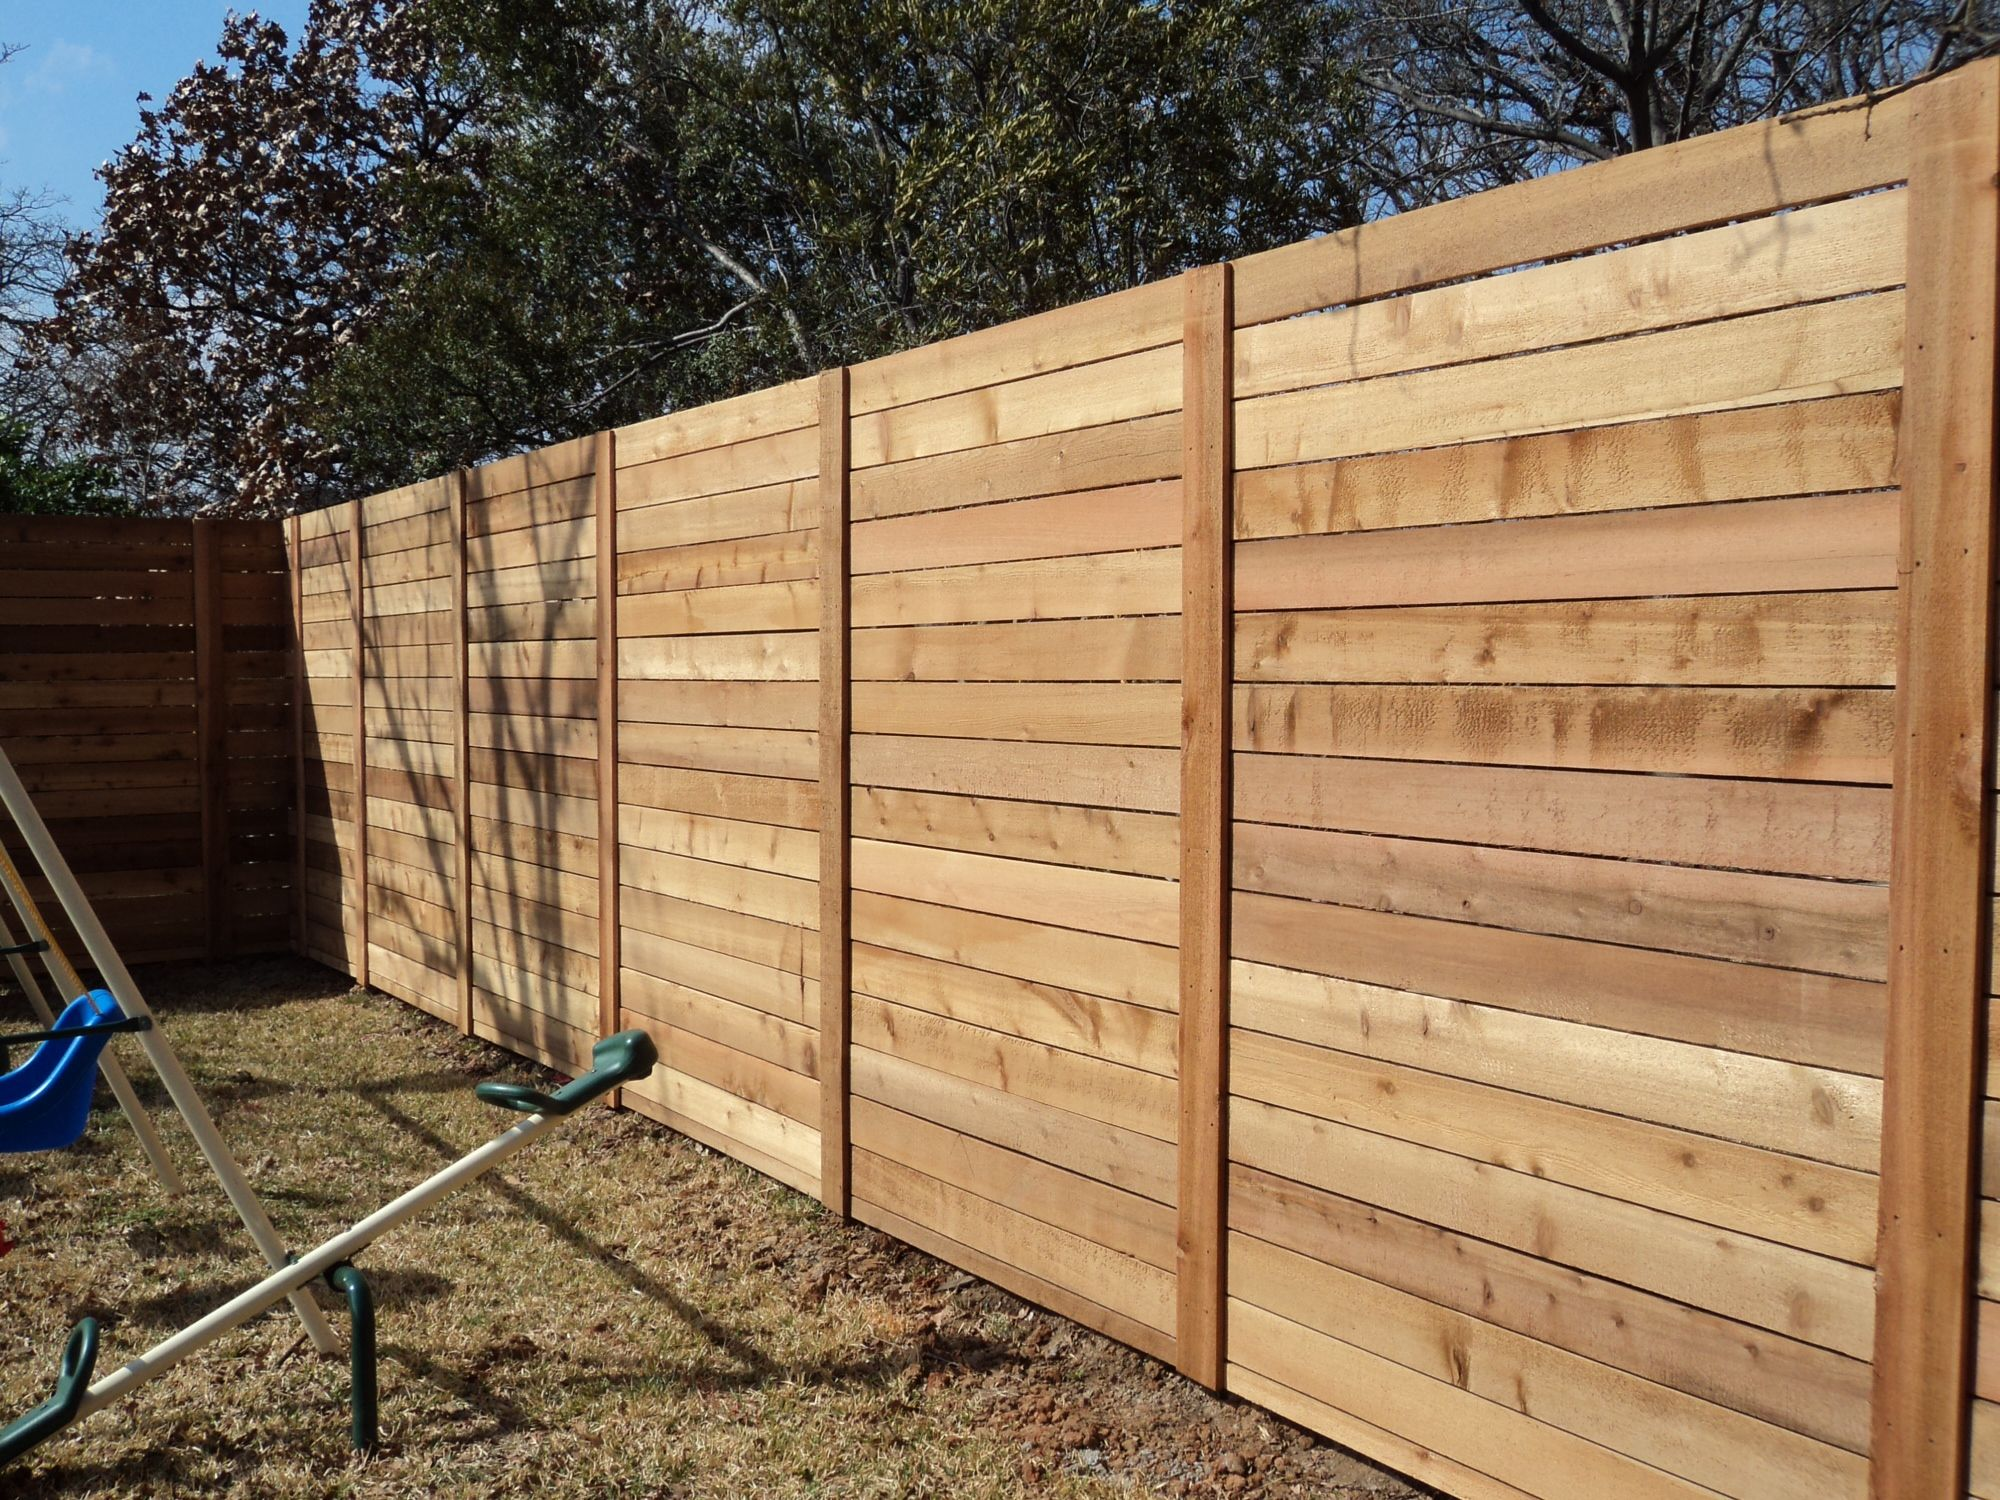 best ideas about wood fence gates wood fences 17 best ideas about wood fence gates wood fences fence gate and fence ideas